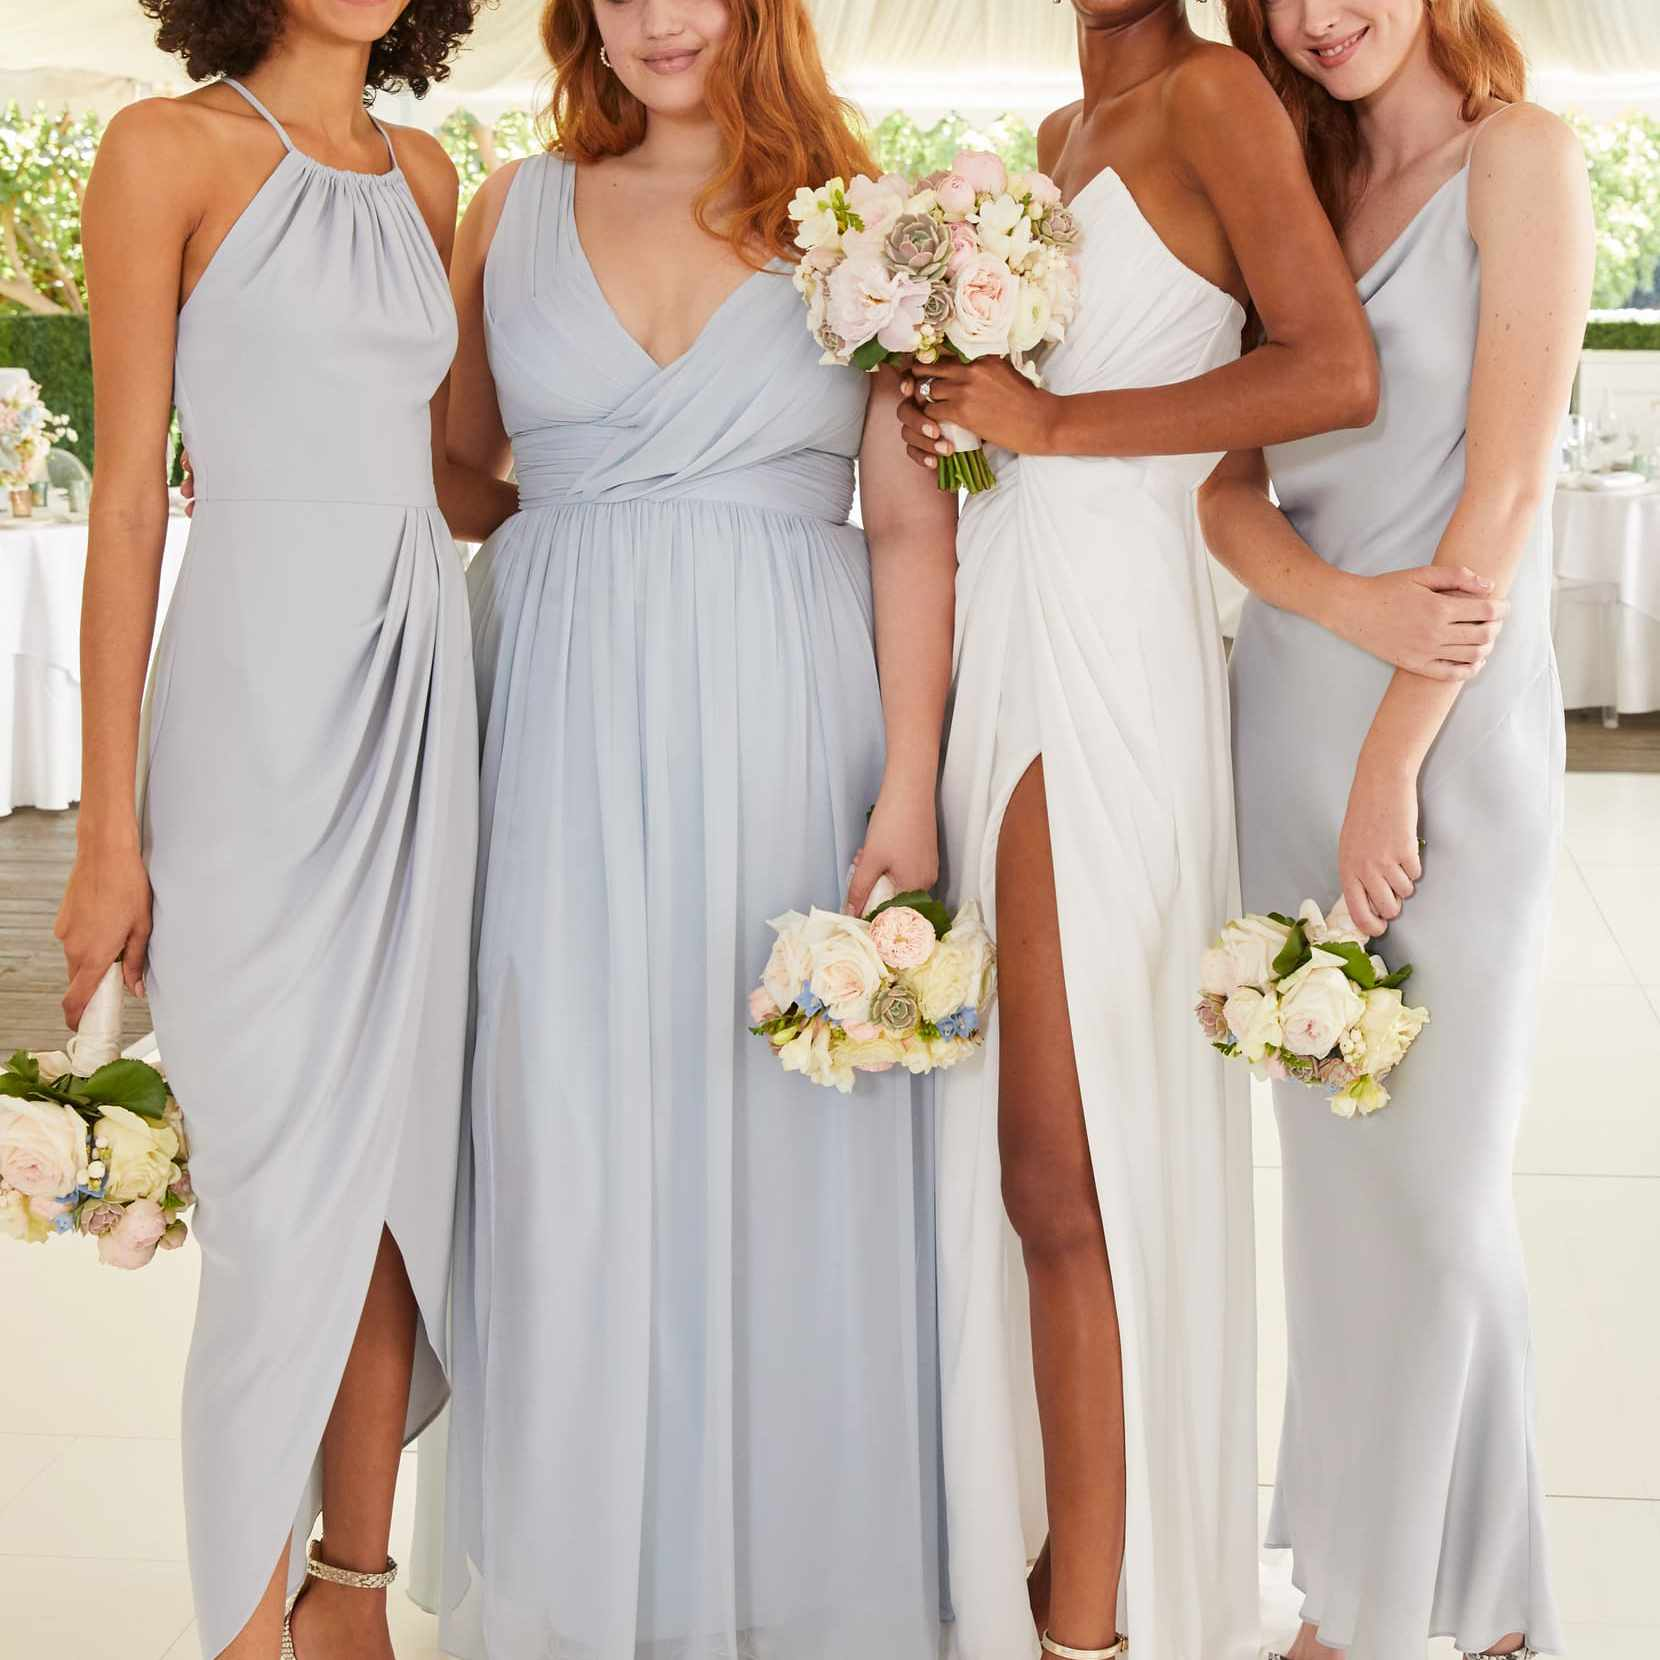 The 7 Best Places to Buy Bridesmaid Dresses Online of 7